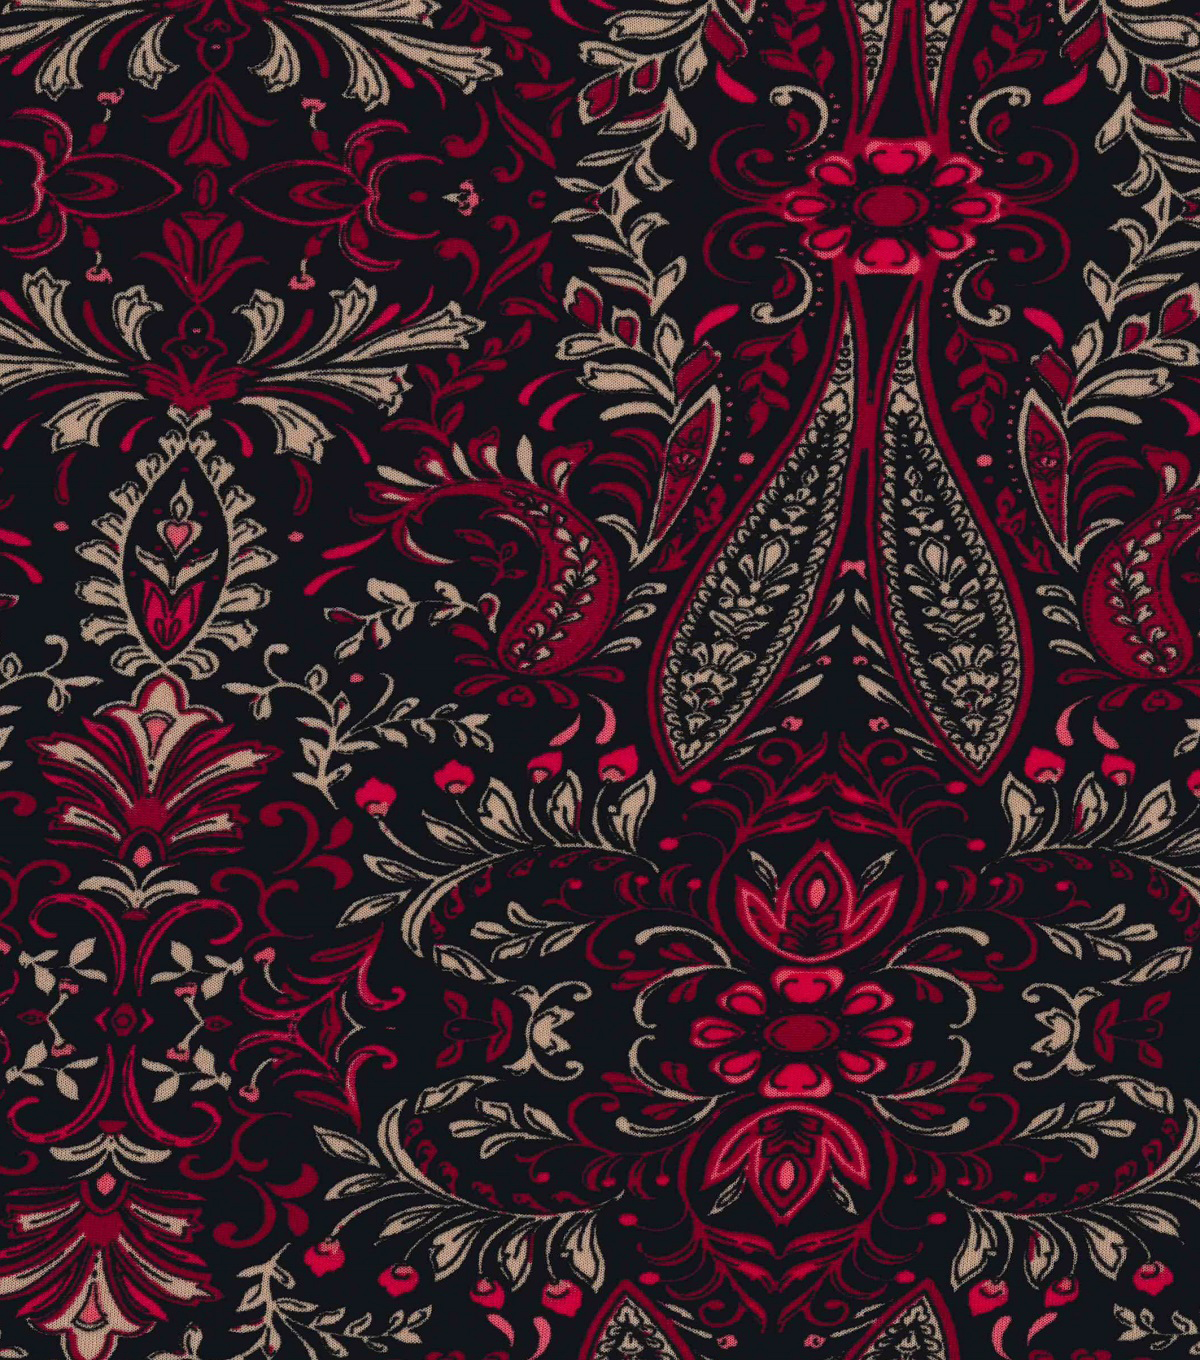 Knit Apparel Fabric -Plum Leaves Paisley